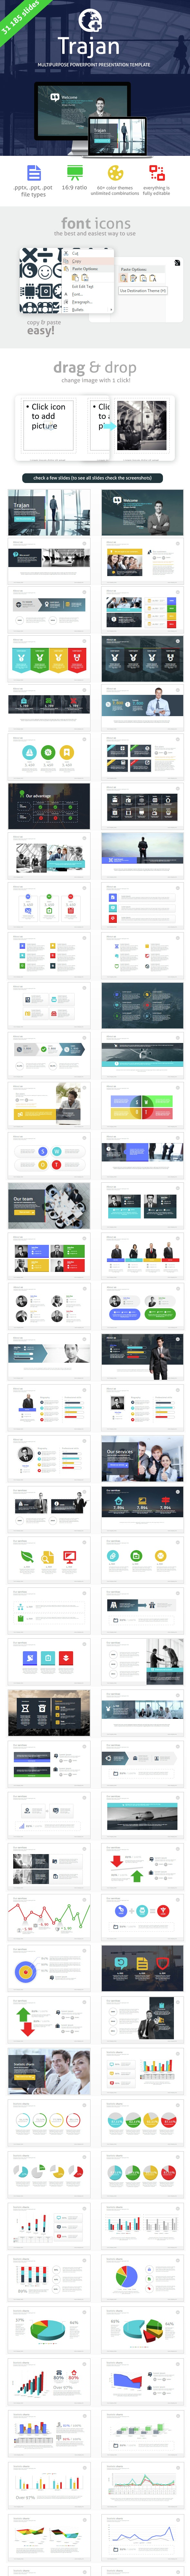 Trajan Powerpoint Presentation Template - Business PowerPoint Templates